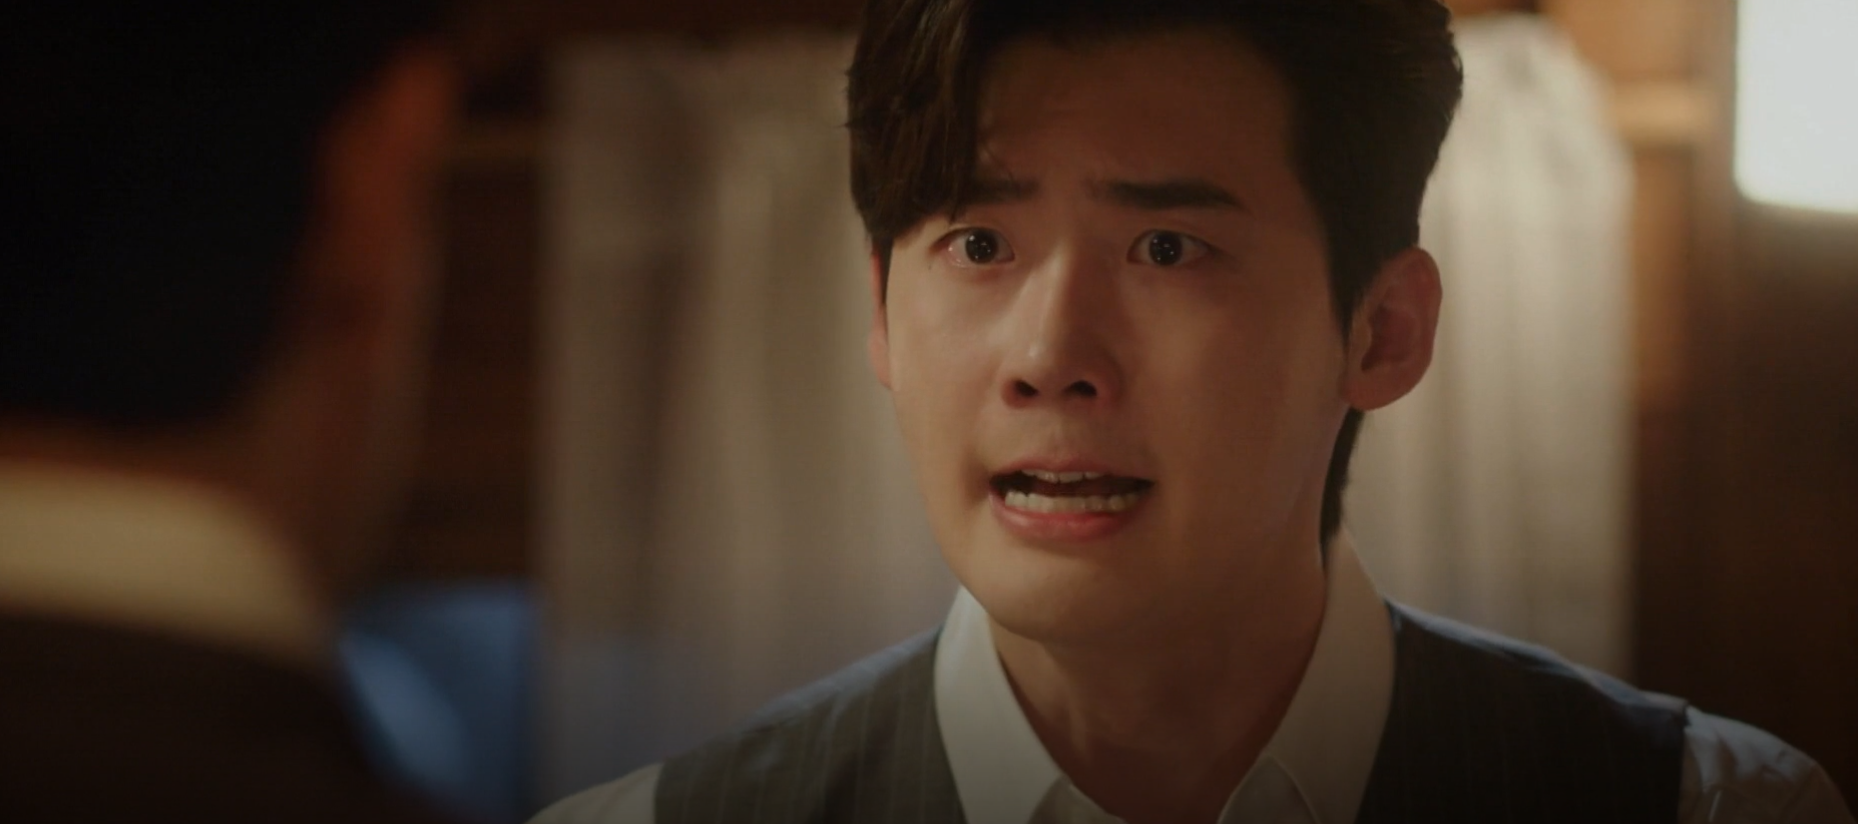 "Lee JongSuk's Heartbreaking Scene Got Viewers About To Cry In Episode 2 Of ""Hymn Of Death"""